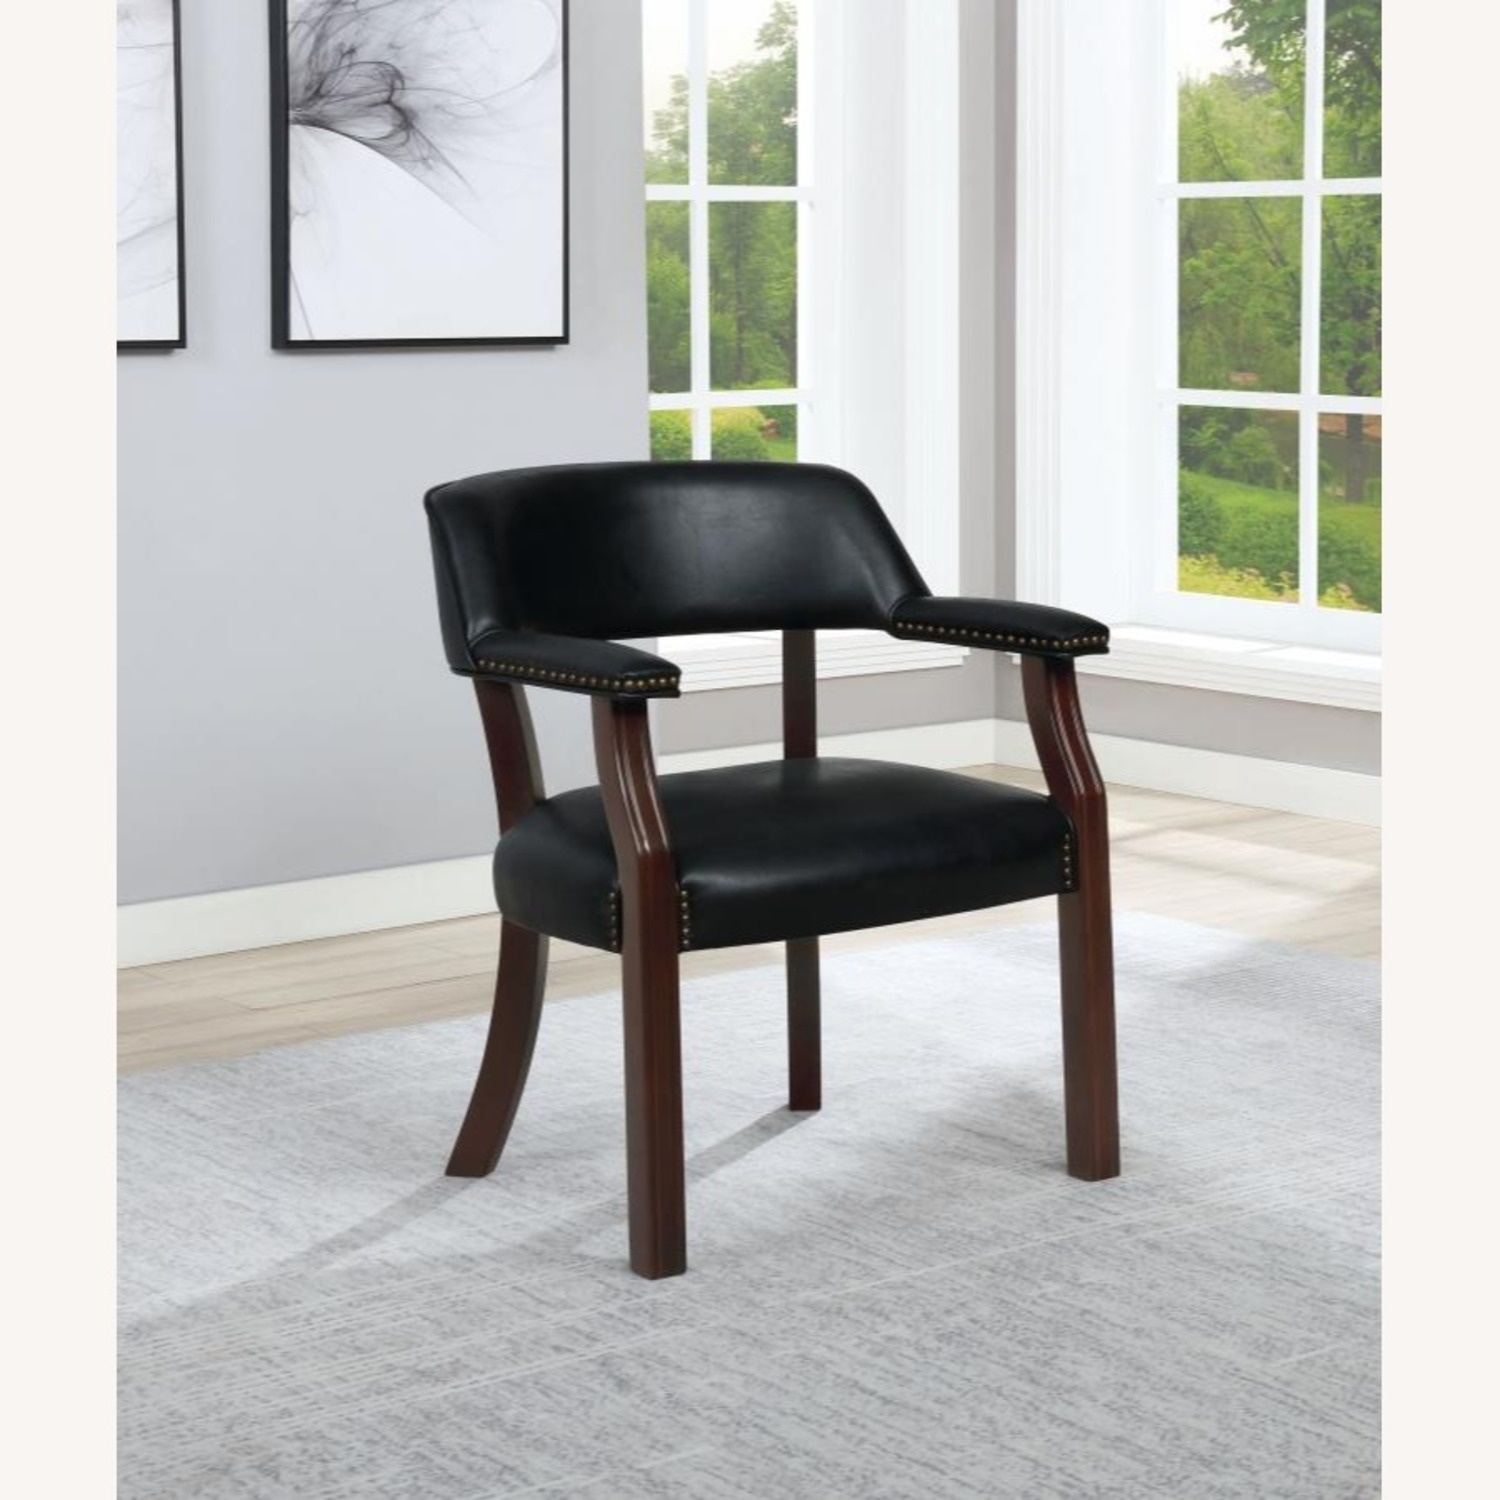 Guest Chair In Black Leatherette - image-2